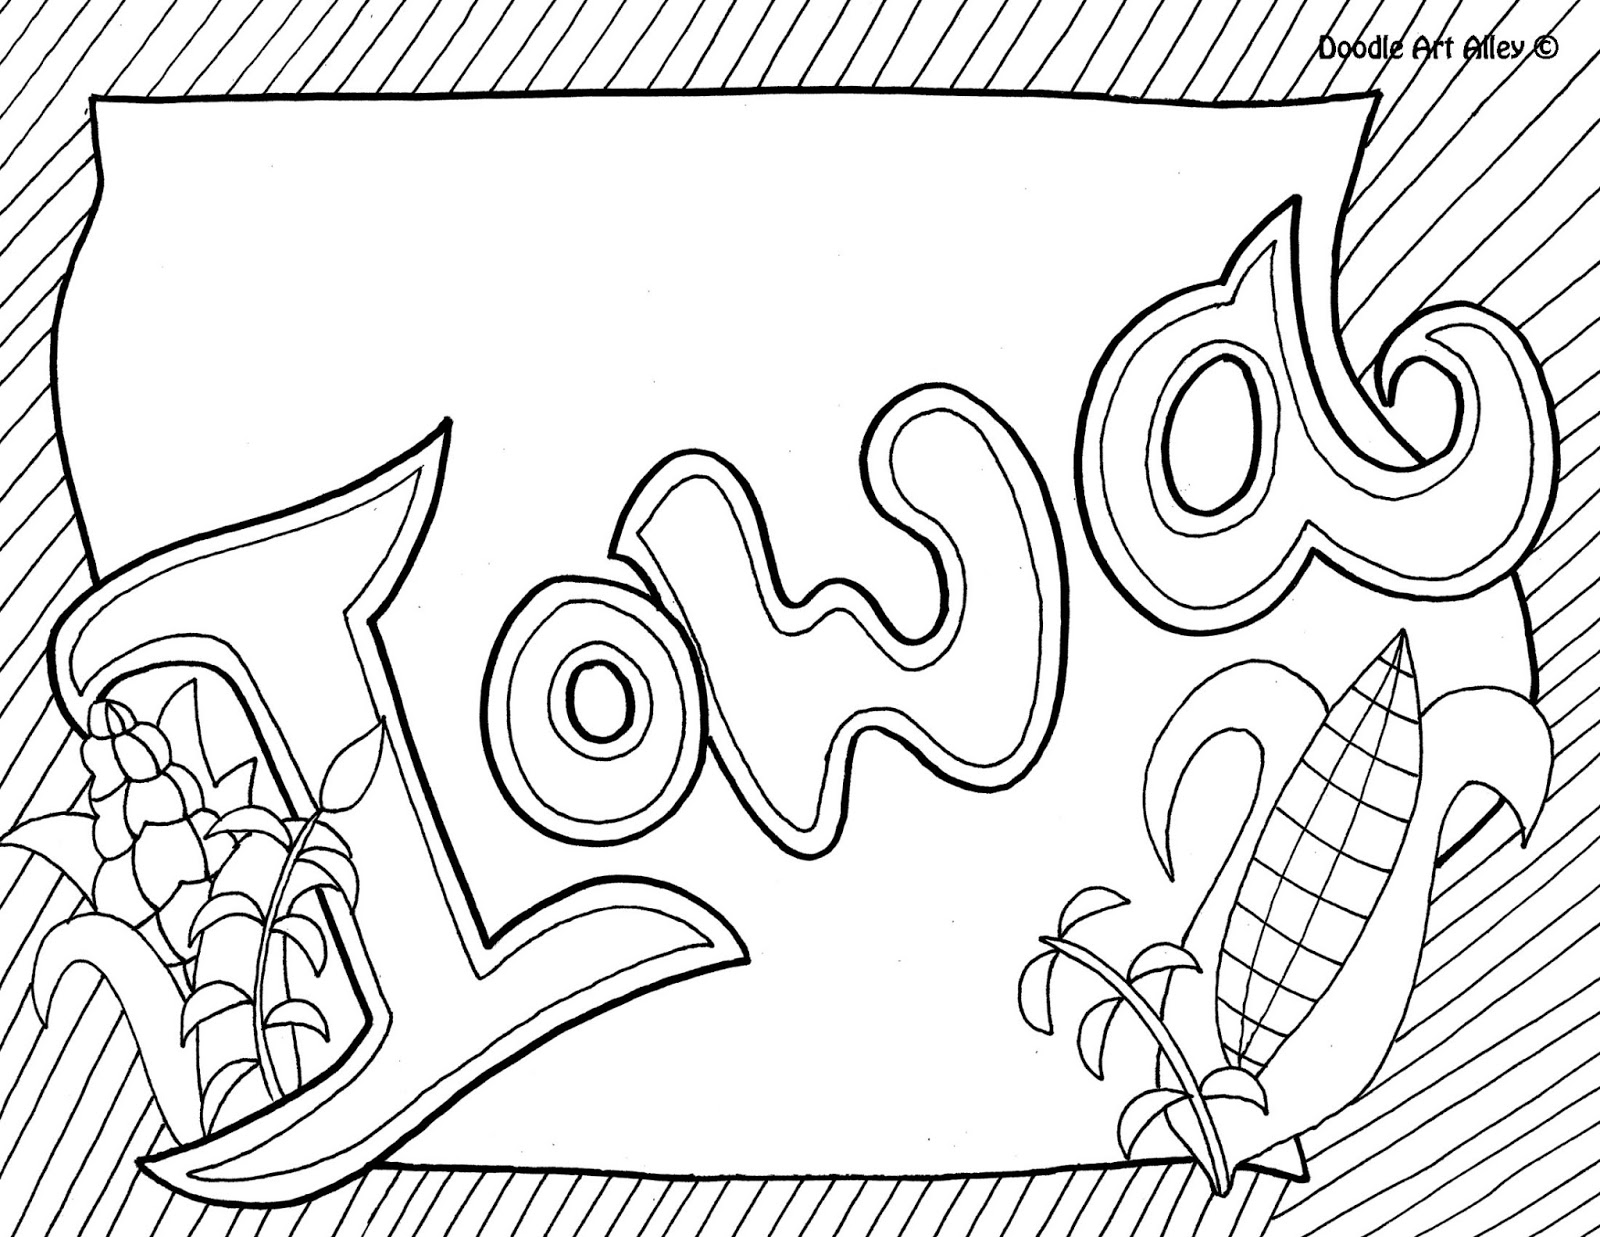 Teacher\'s Life Made Easy!!!: Free Awesome Coloring Pages